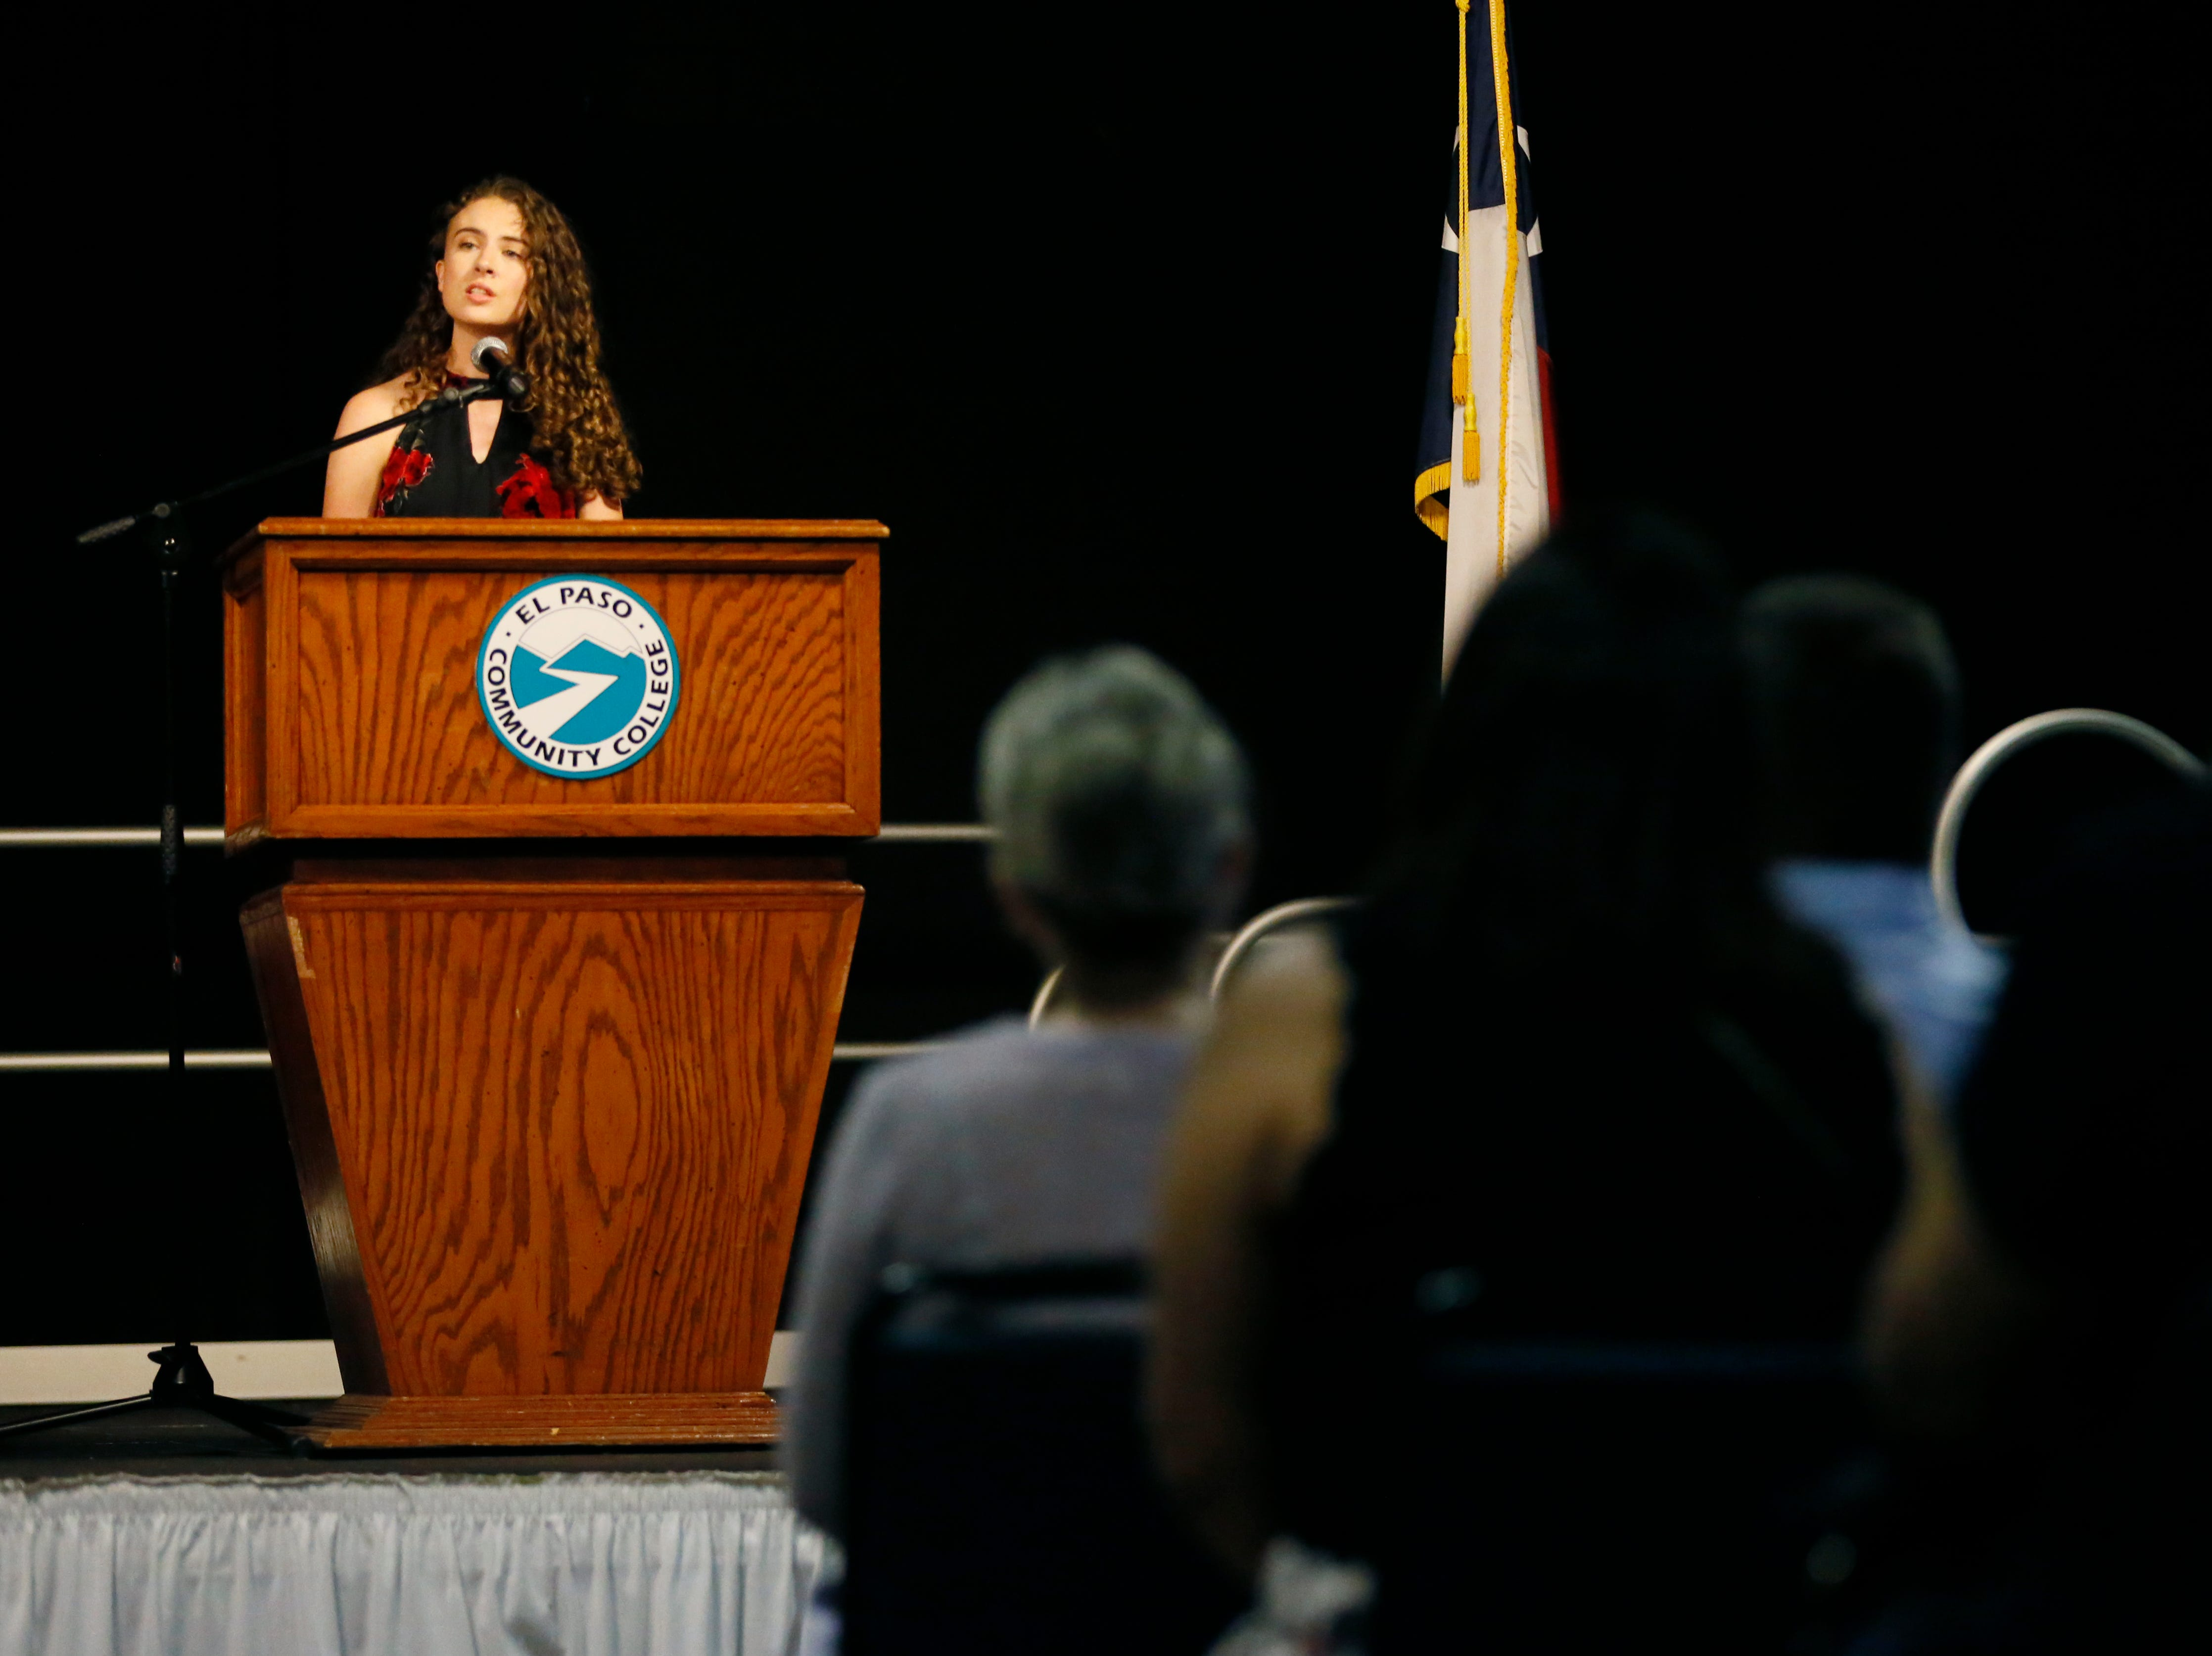 Mission Early College High School student Sidnee Klein gives a speech to her class Tuesday, May 7, at stoling ceremony at EPCC Administrative Service Center in El Paso.